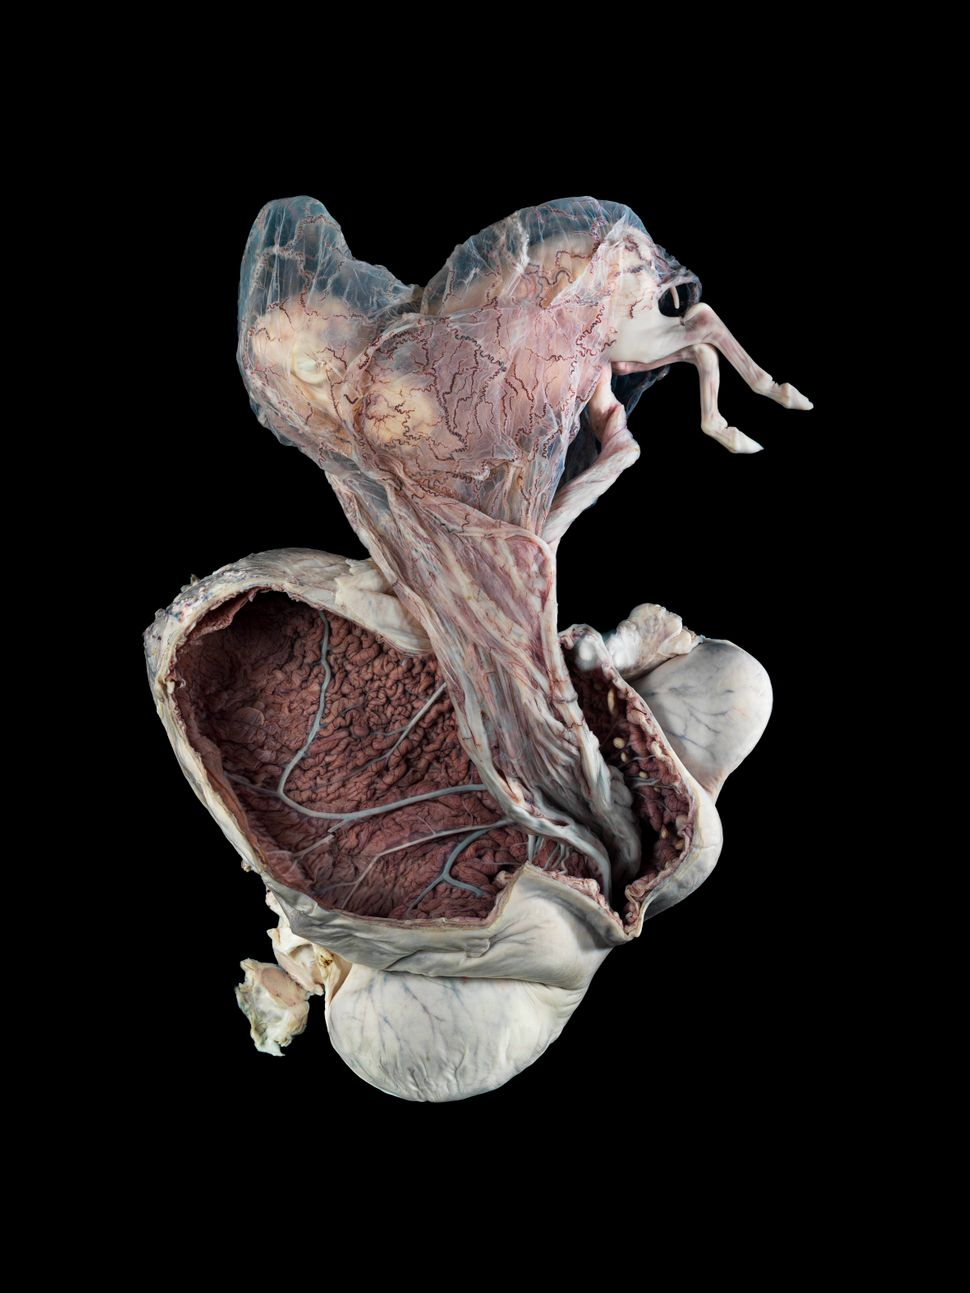 The uterus of a pregnant horse.